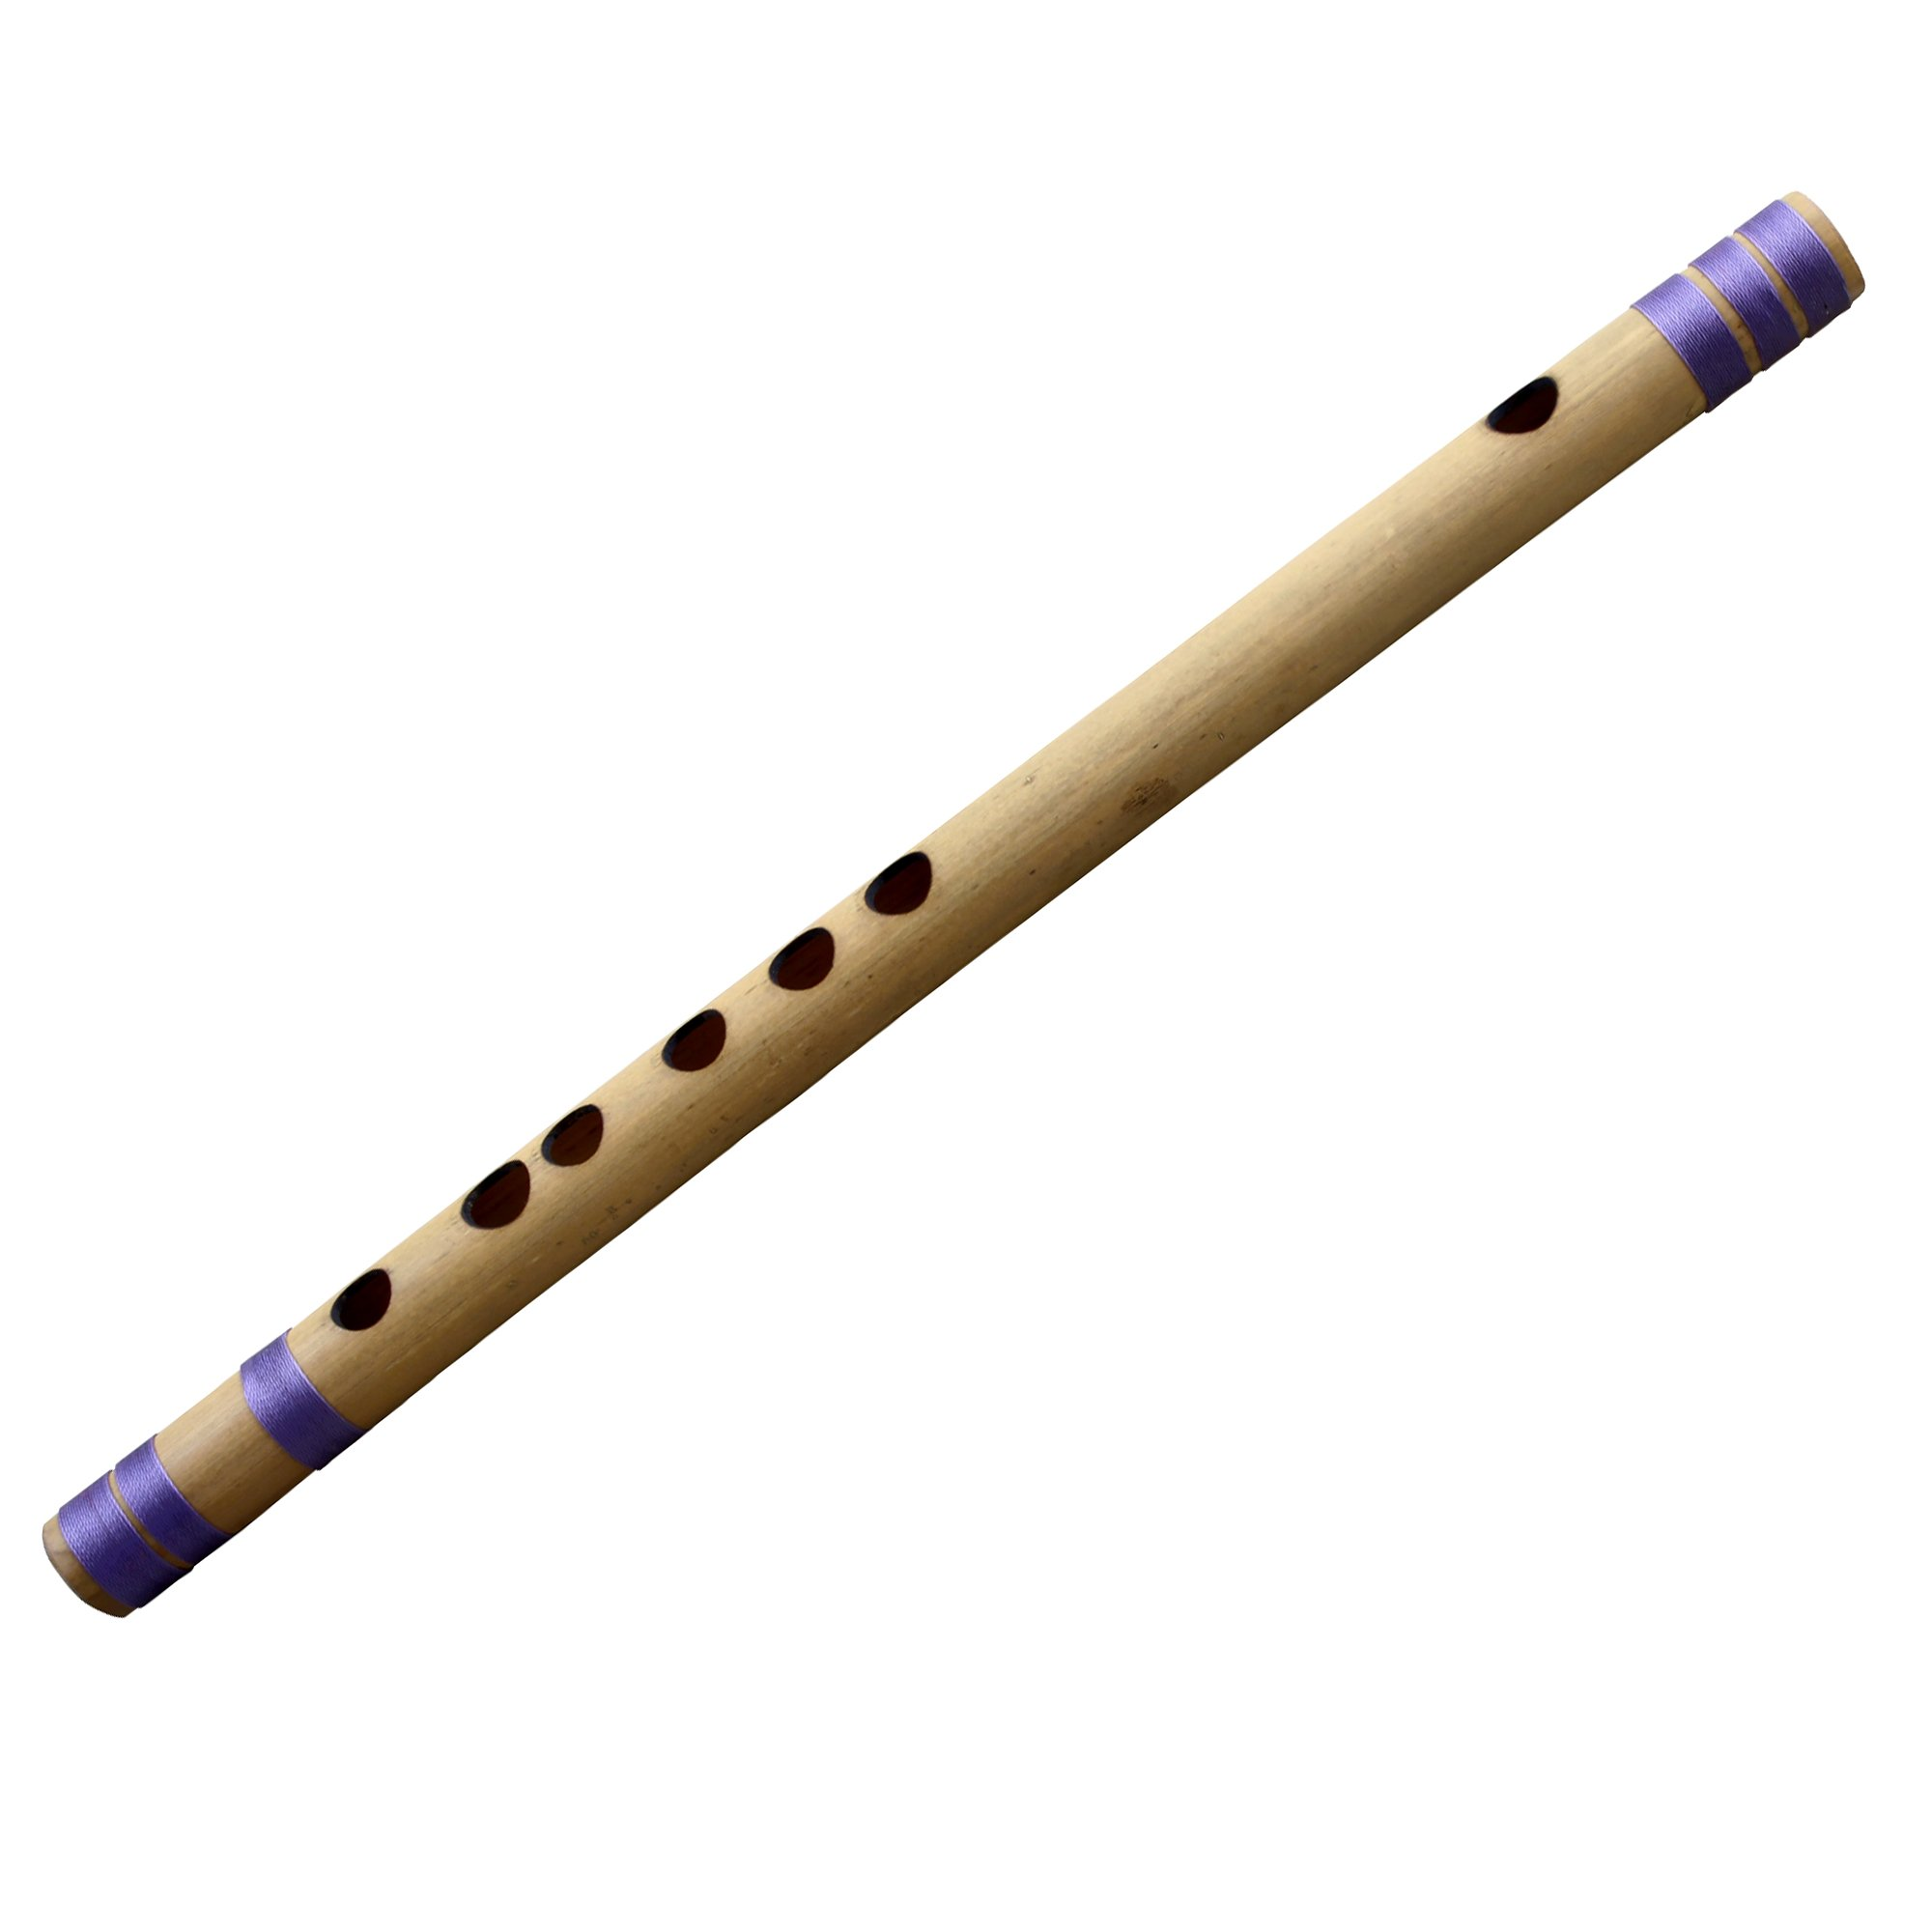 Bamboo Wooden Flute Indian Bansuri, Key-G#, 12 Inches Long - Classical Musicial Instruments for Professional